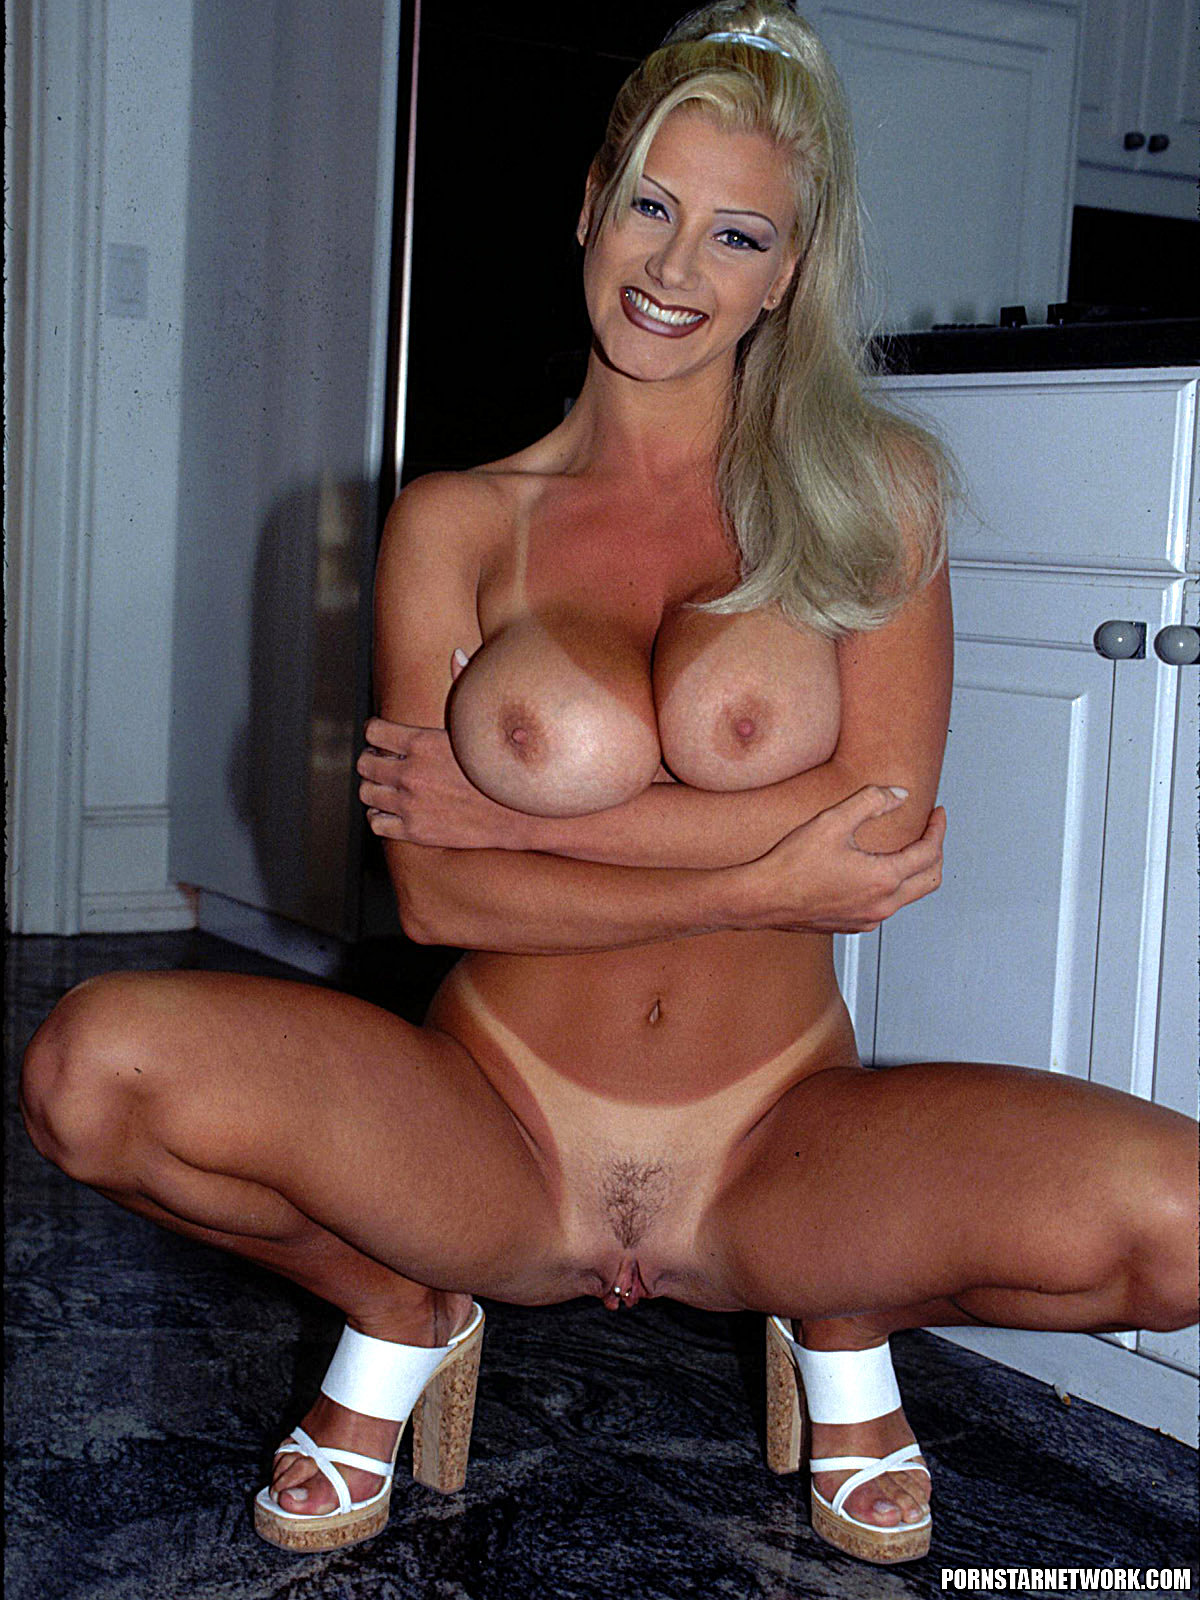 Brittany Andrews - Blond Milf Med Big Tits Gets Fucked 58331-4815